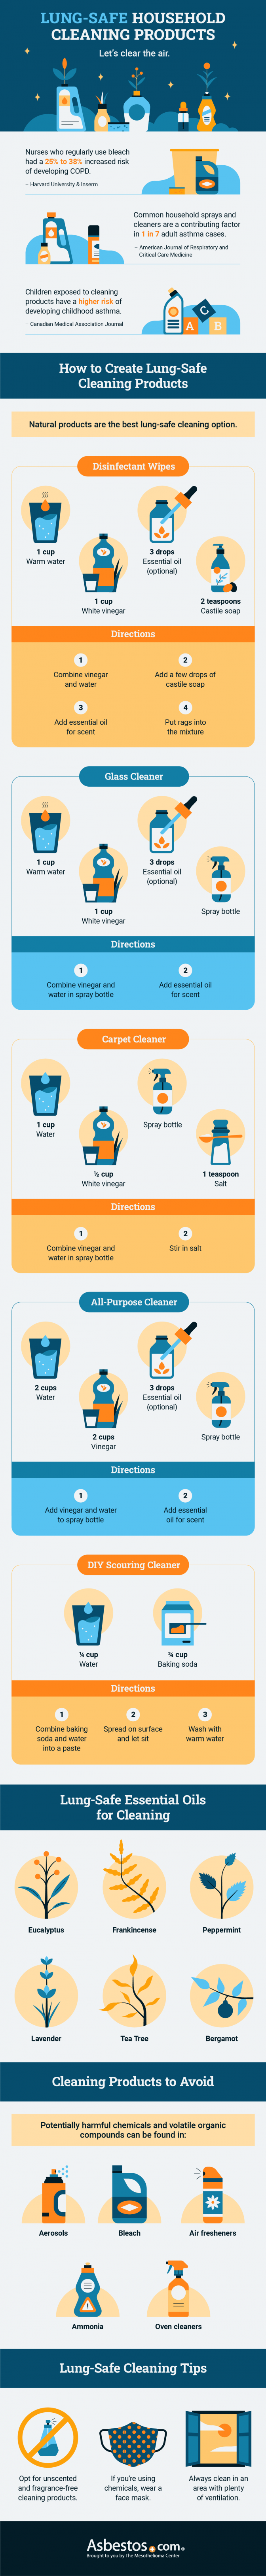 Guide to Lung-Safe Household Products Infographic